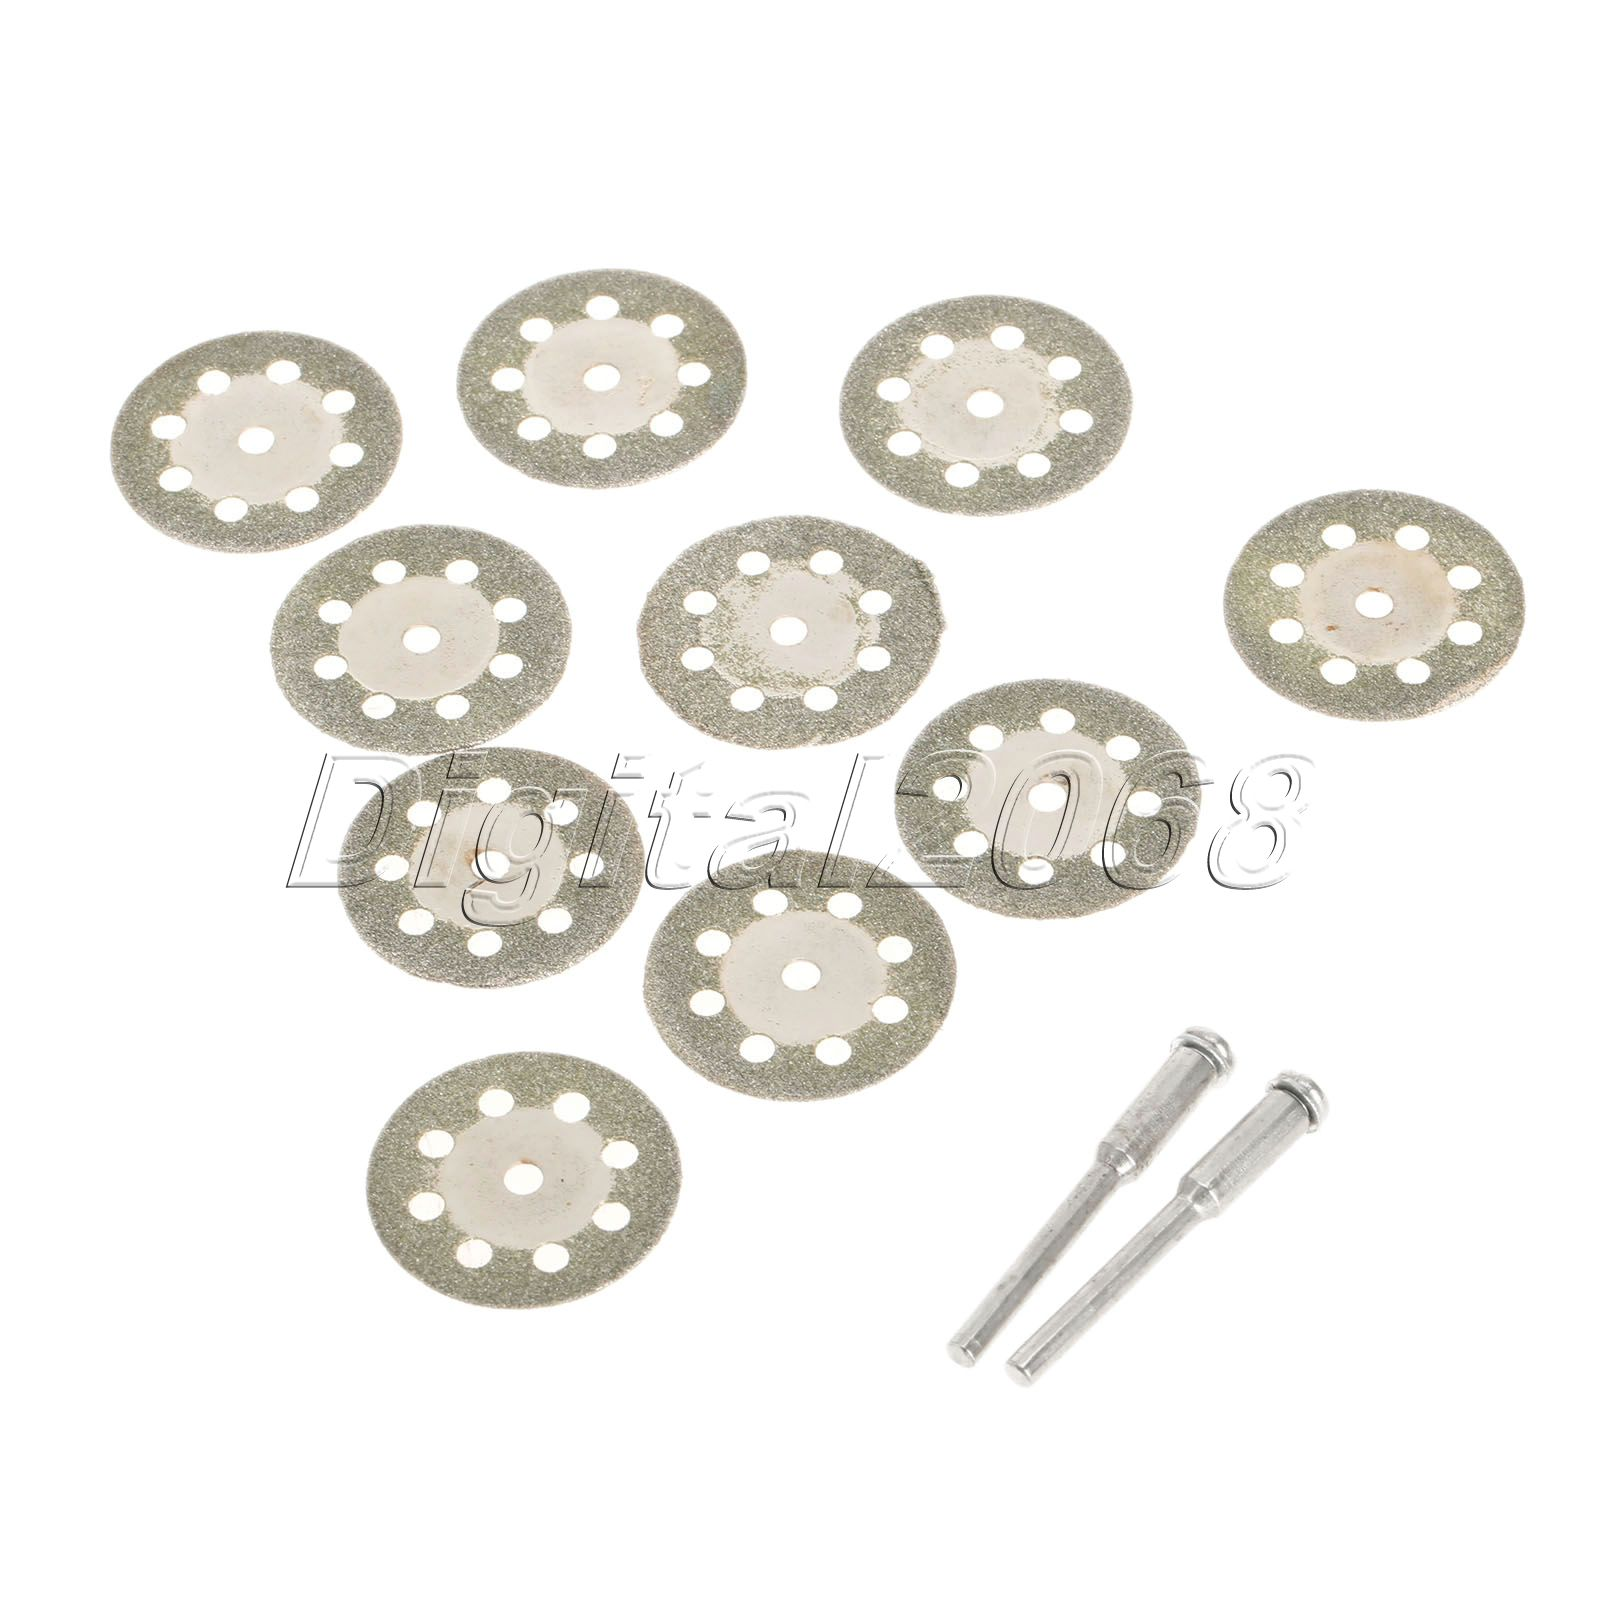 Hot 10pcs Diamond Circular Saw Blades Cutting Cut Off Wheel Discs + 2pcs Mandrel For Dremel Rotary Tool Cutter Power Tools 25mm